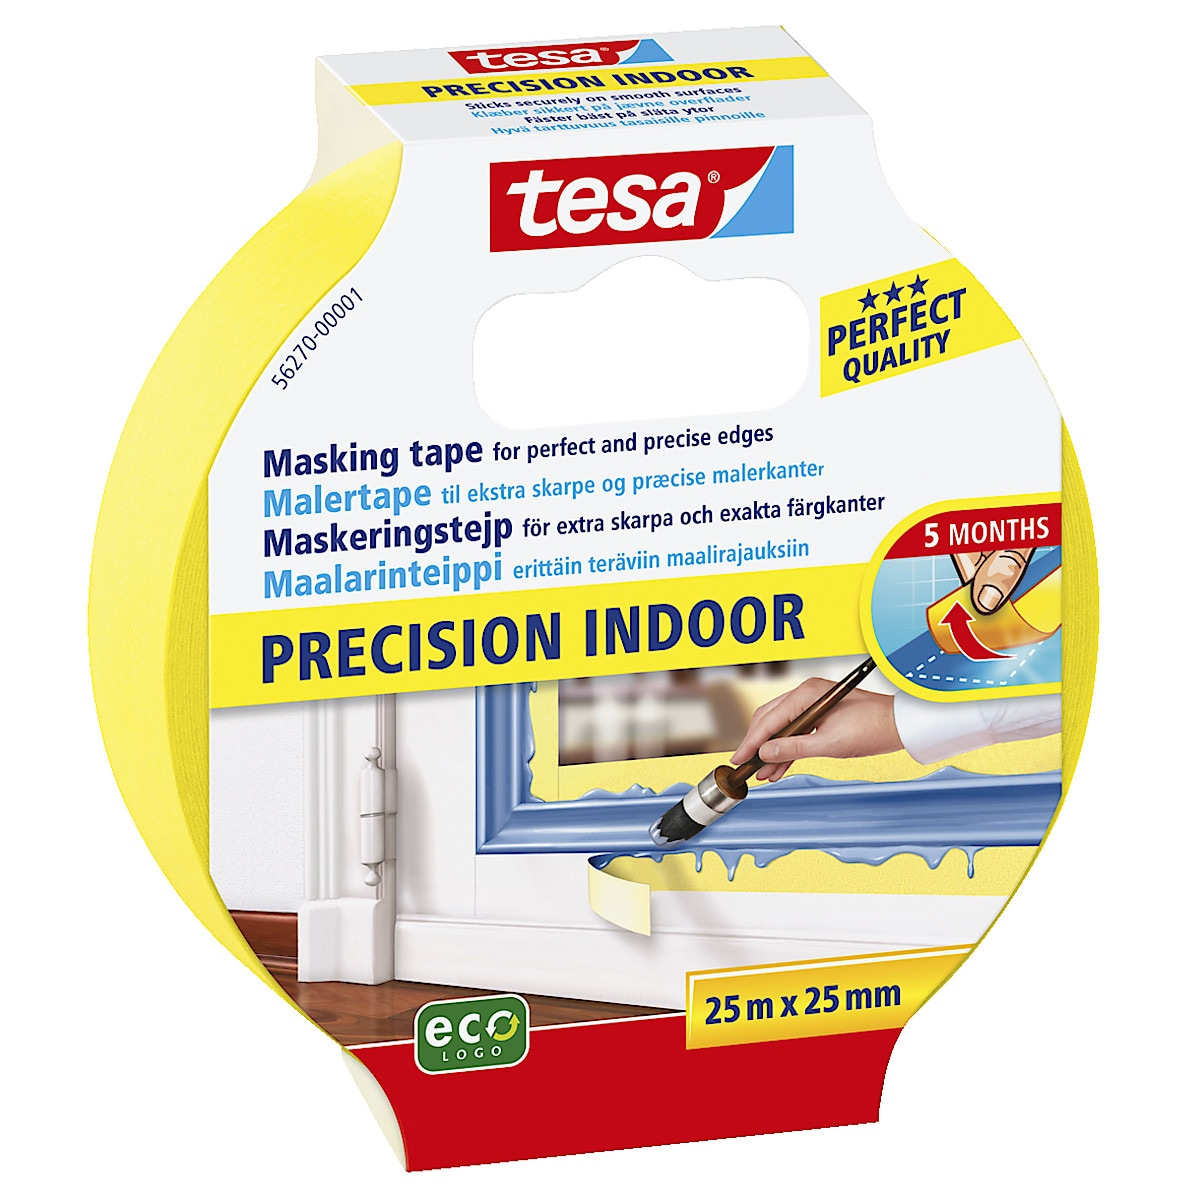 Maskeringstejp Tesa Precision Indoor